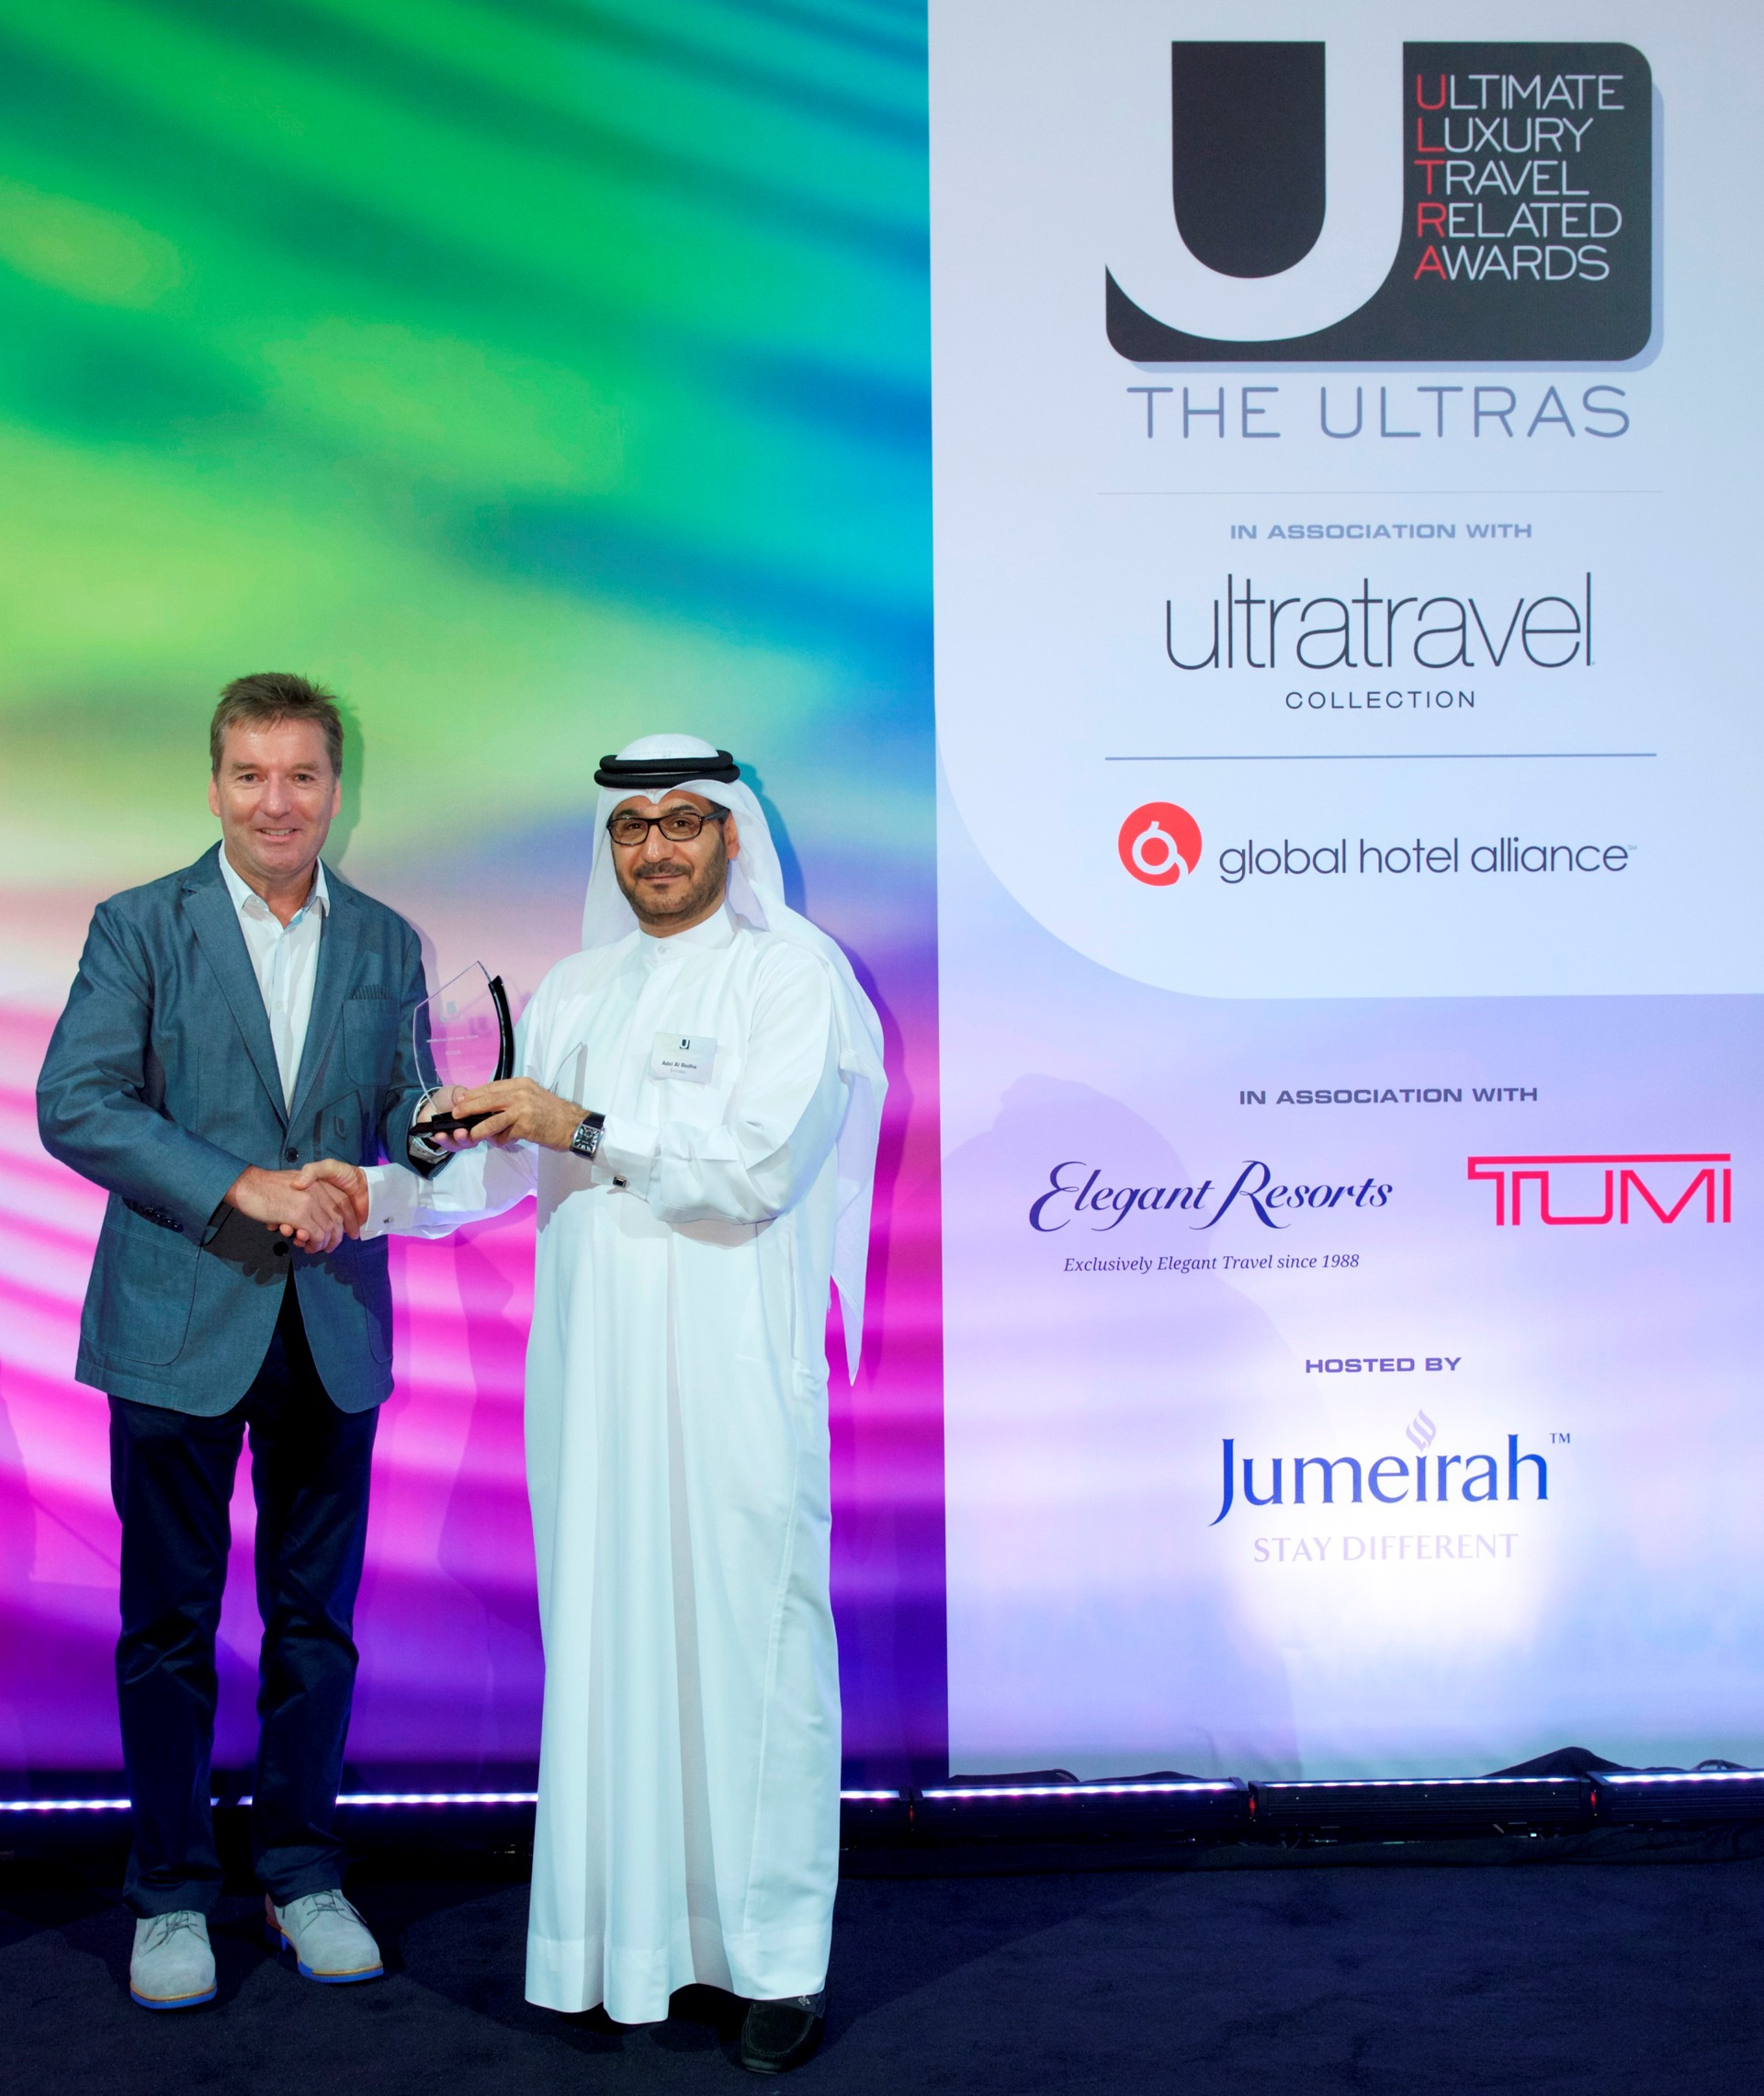 Adel Al Redha, Emirates' Executive Vice President and Chief Operations Officer collected the